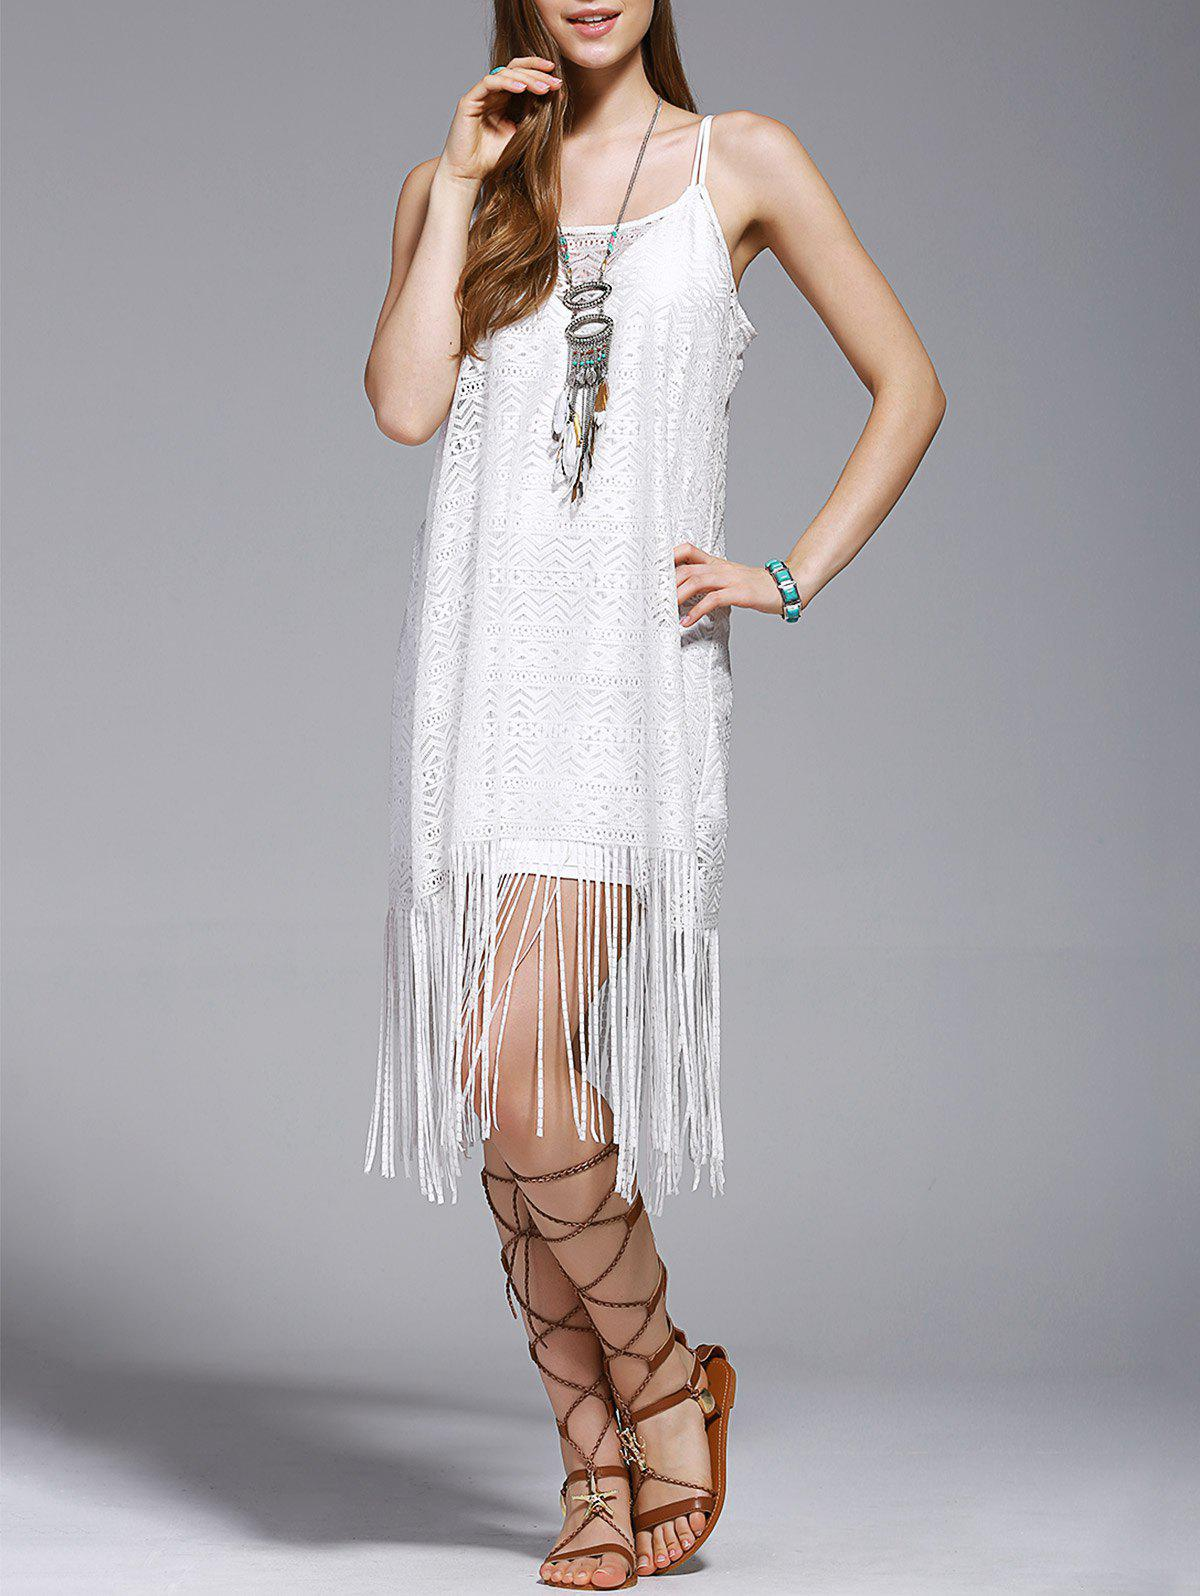 Shop Fashionable Tassel Spaghetti Straps Hollow Out Dress For Women